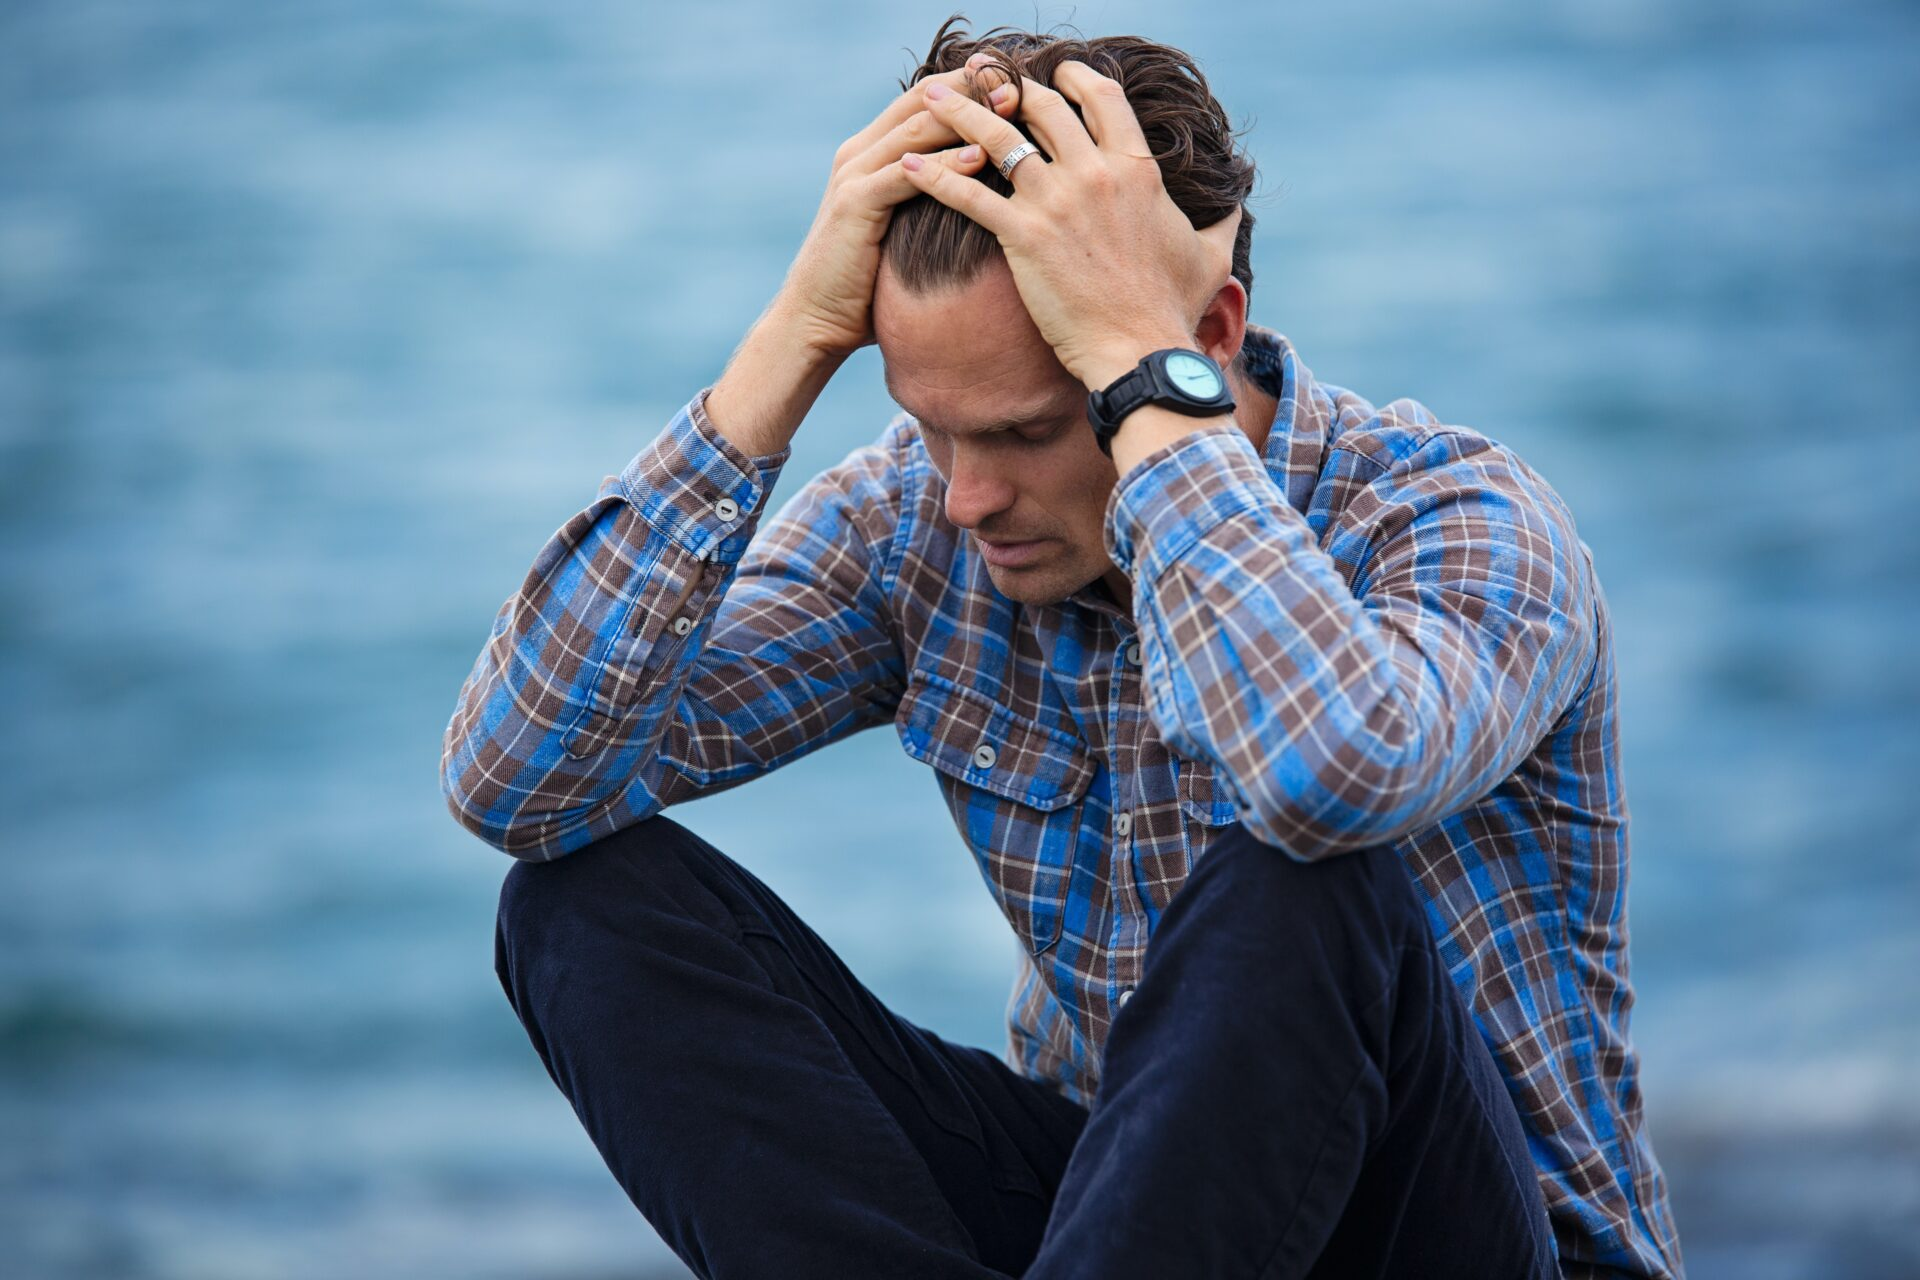 Young man in blue plaid shirt looking overwhelmed